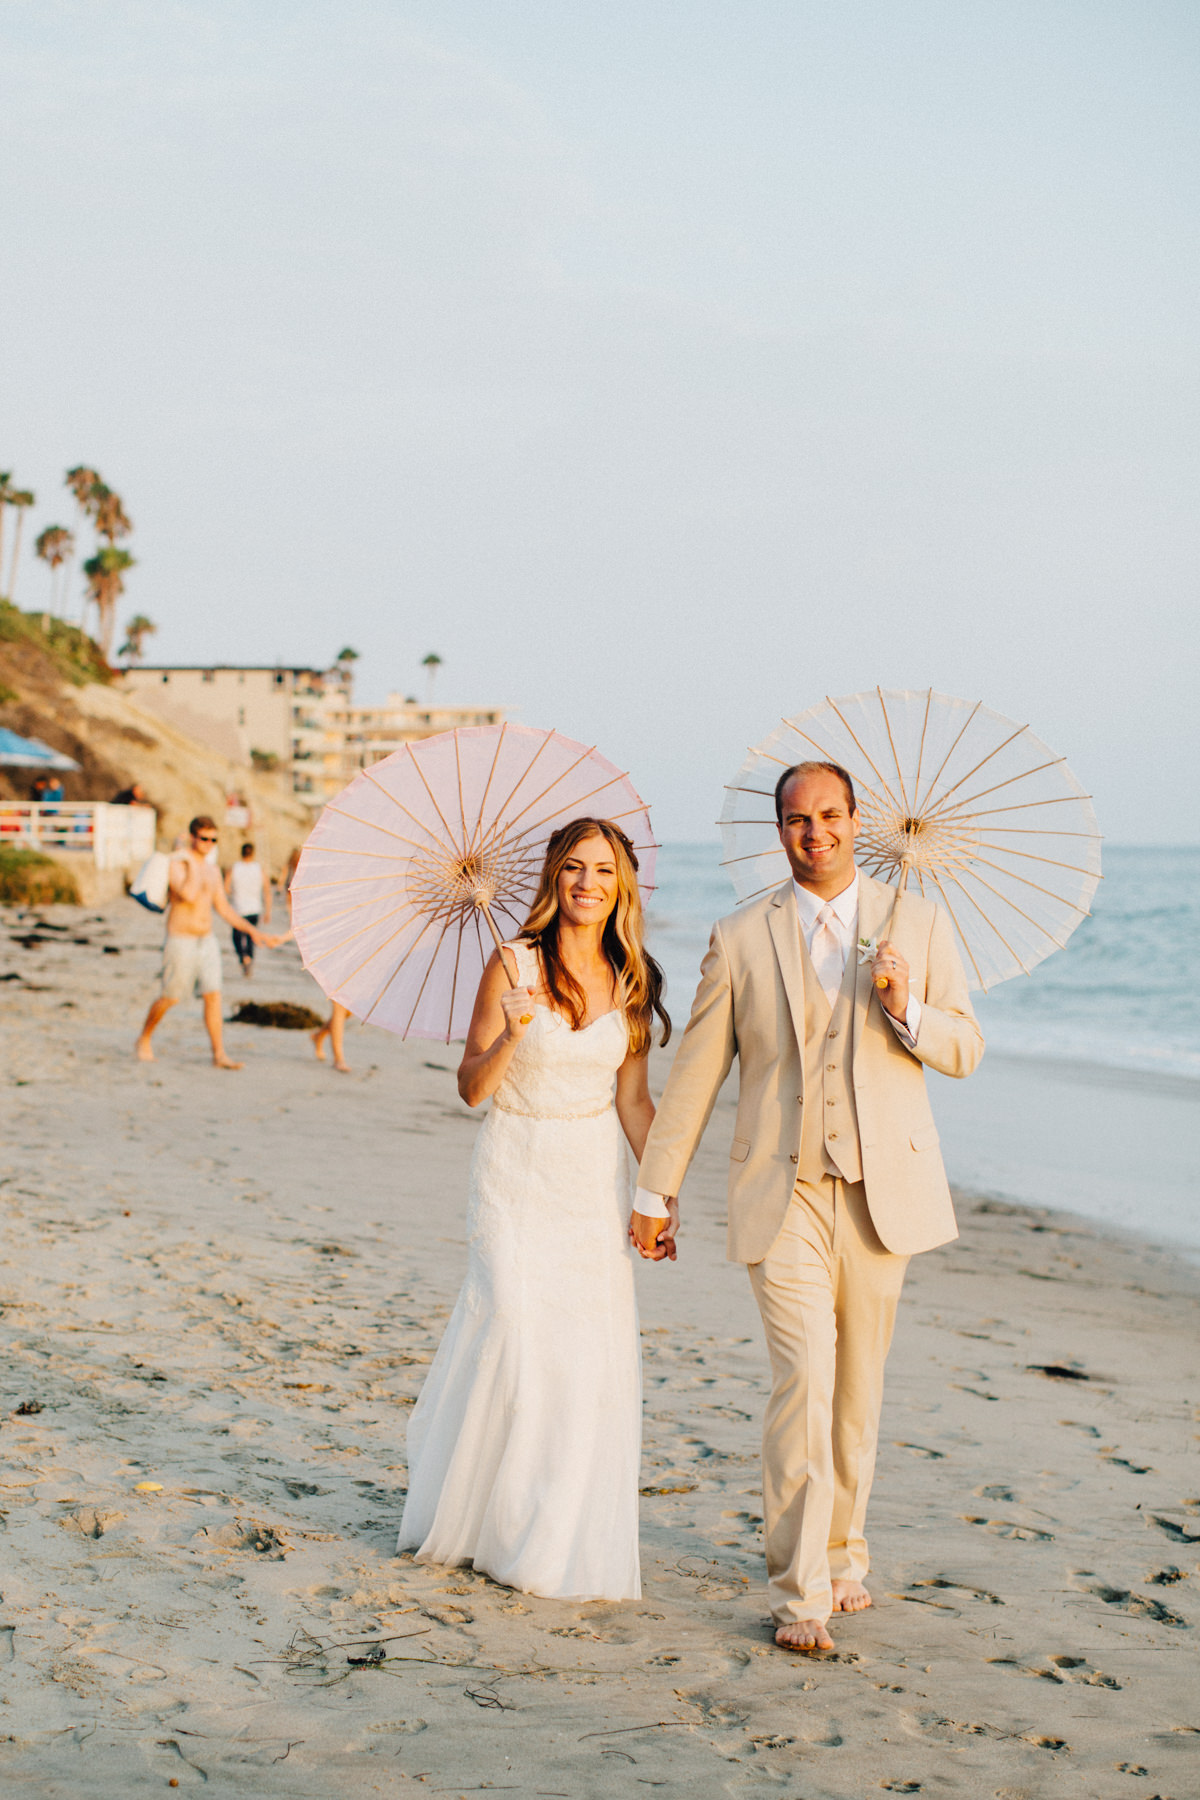 Hotel Laguna Beach Wedding Elopement San Diego OC Portrait + Wedding Photographer Martina Micko Photo 0037